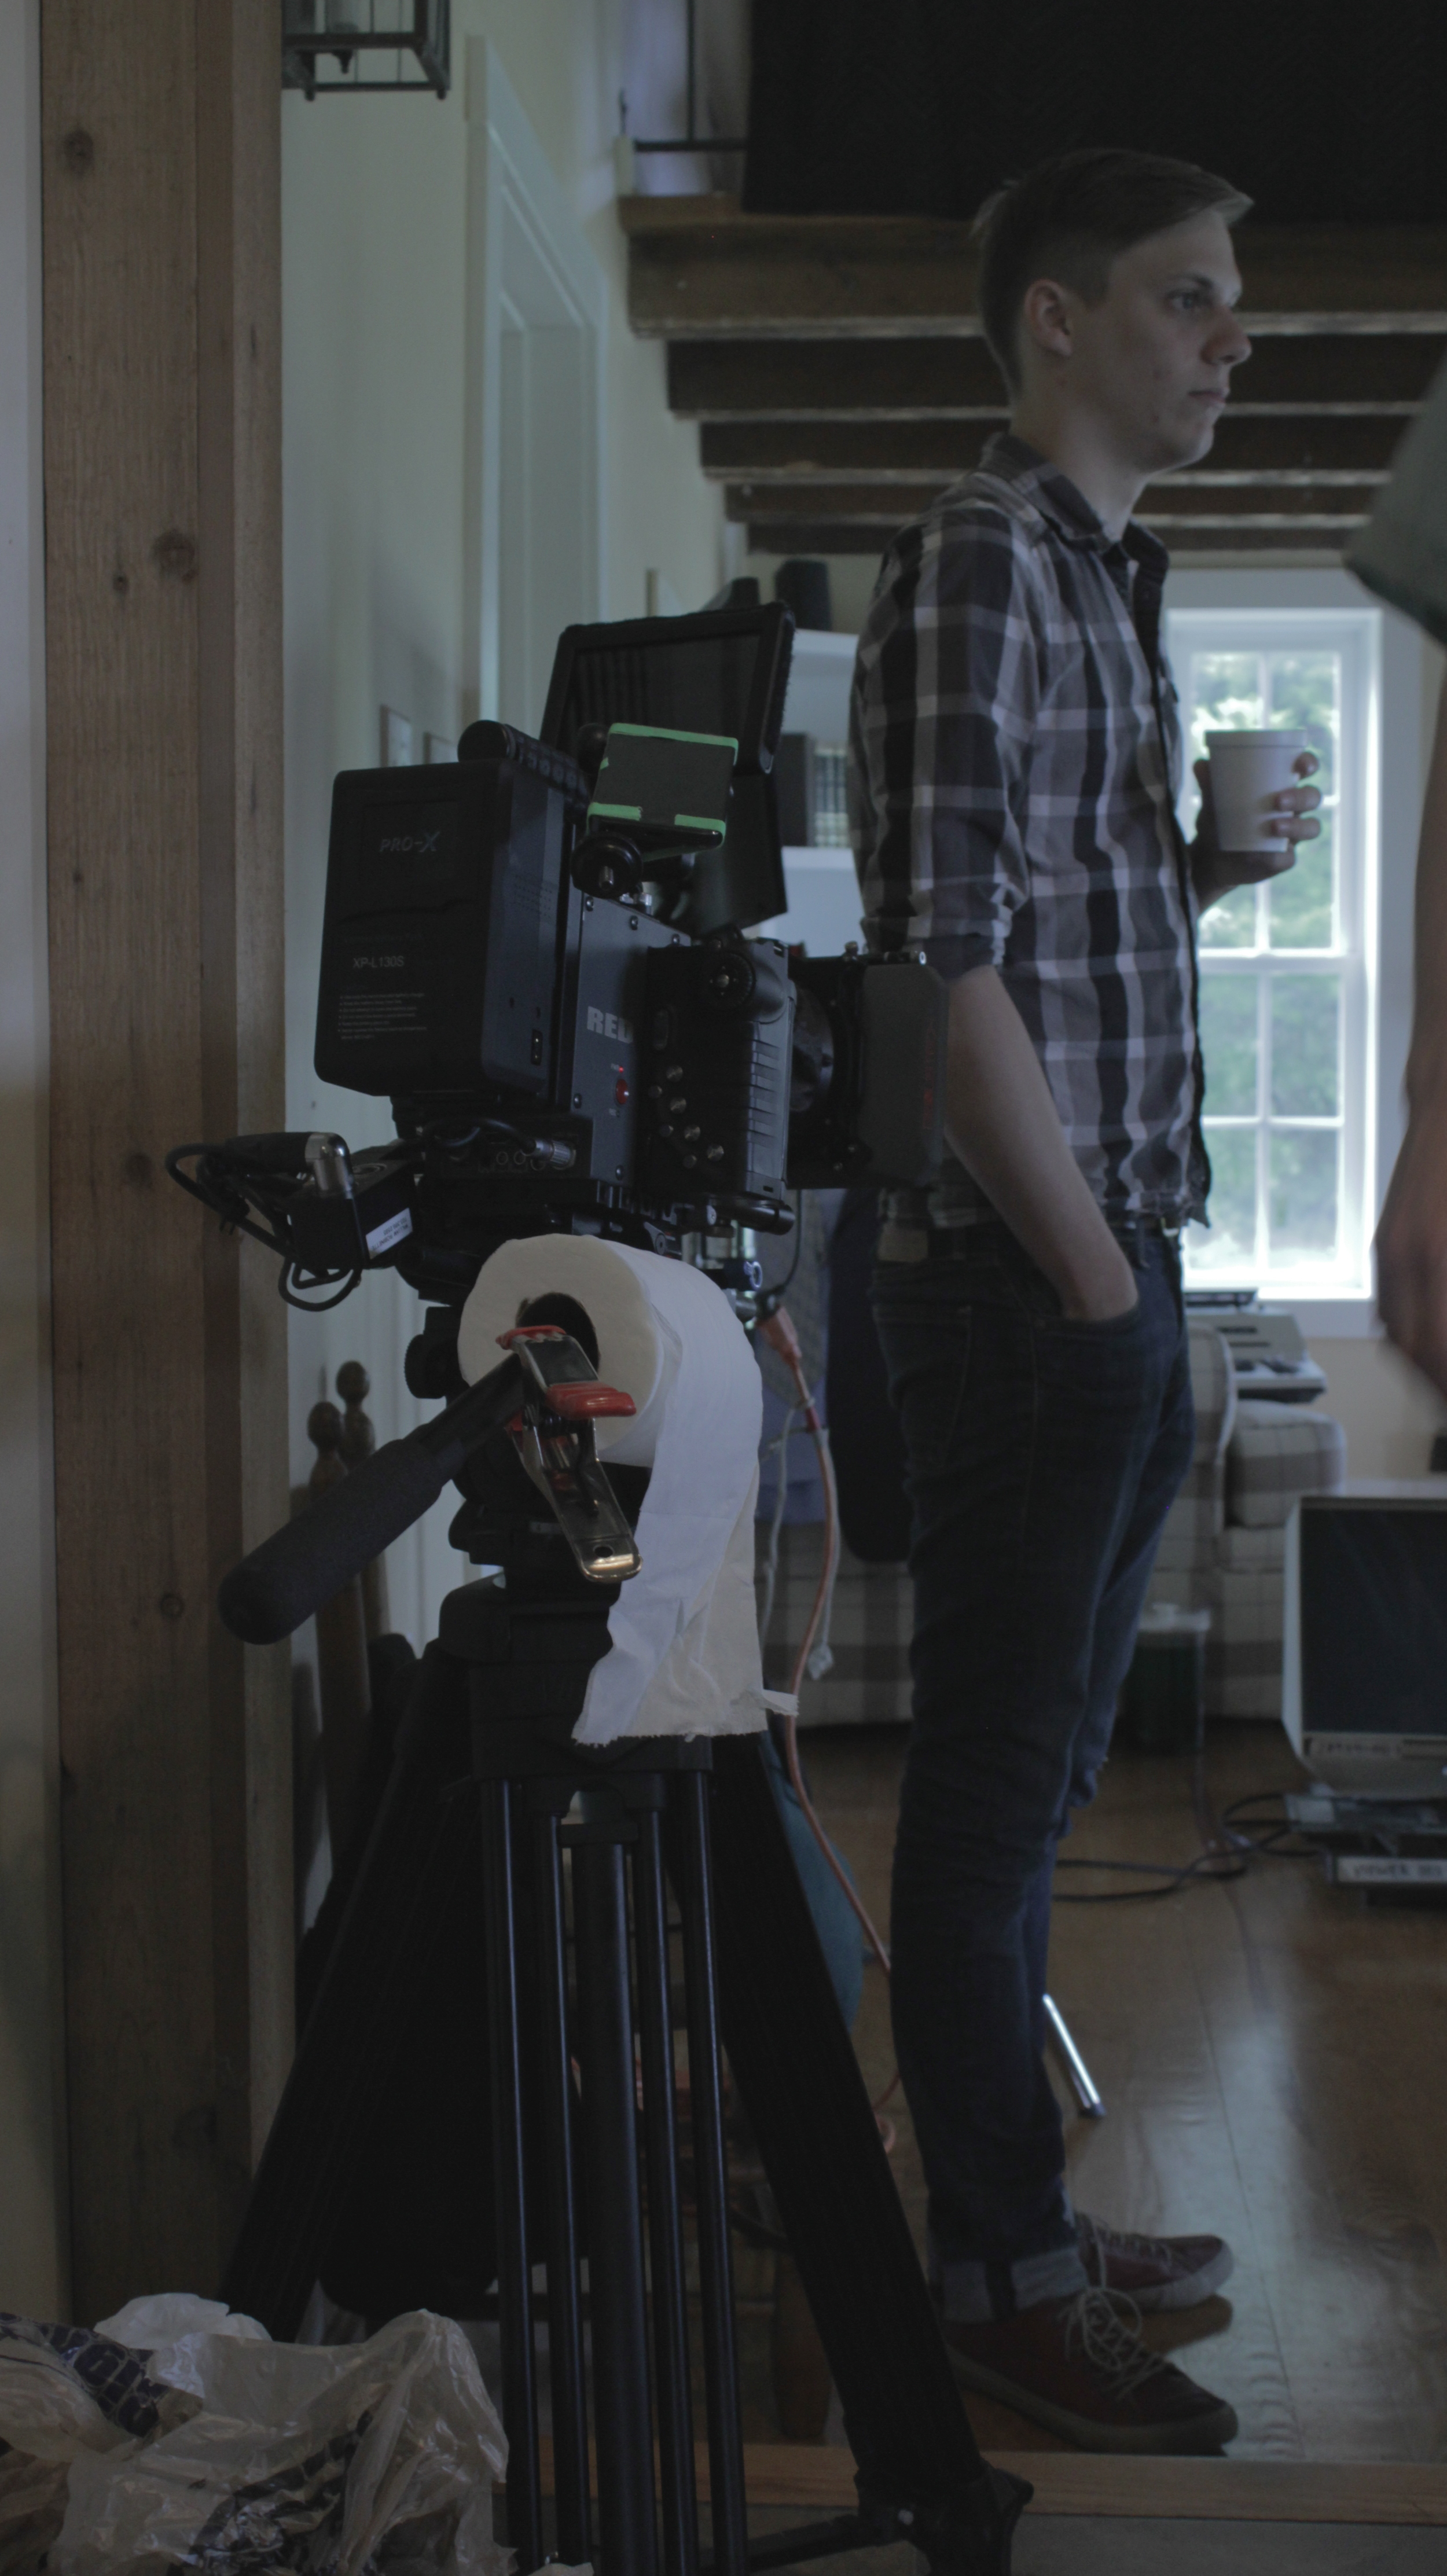 William Robinette (director of photography)